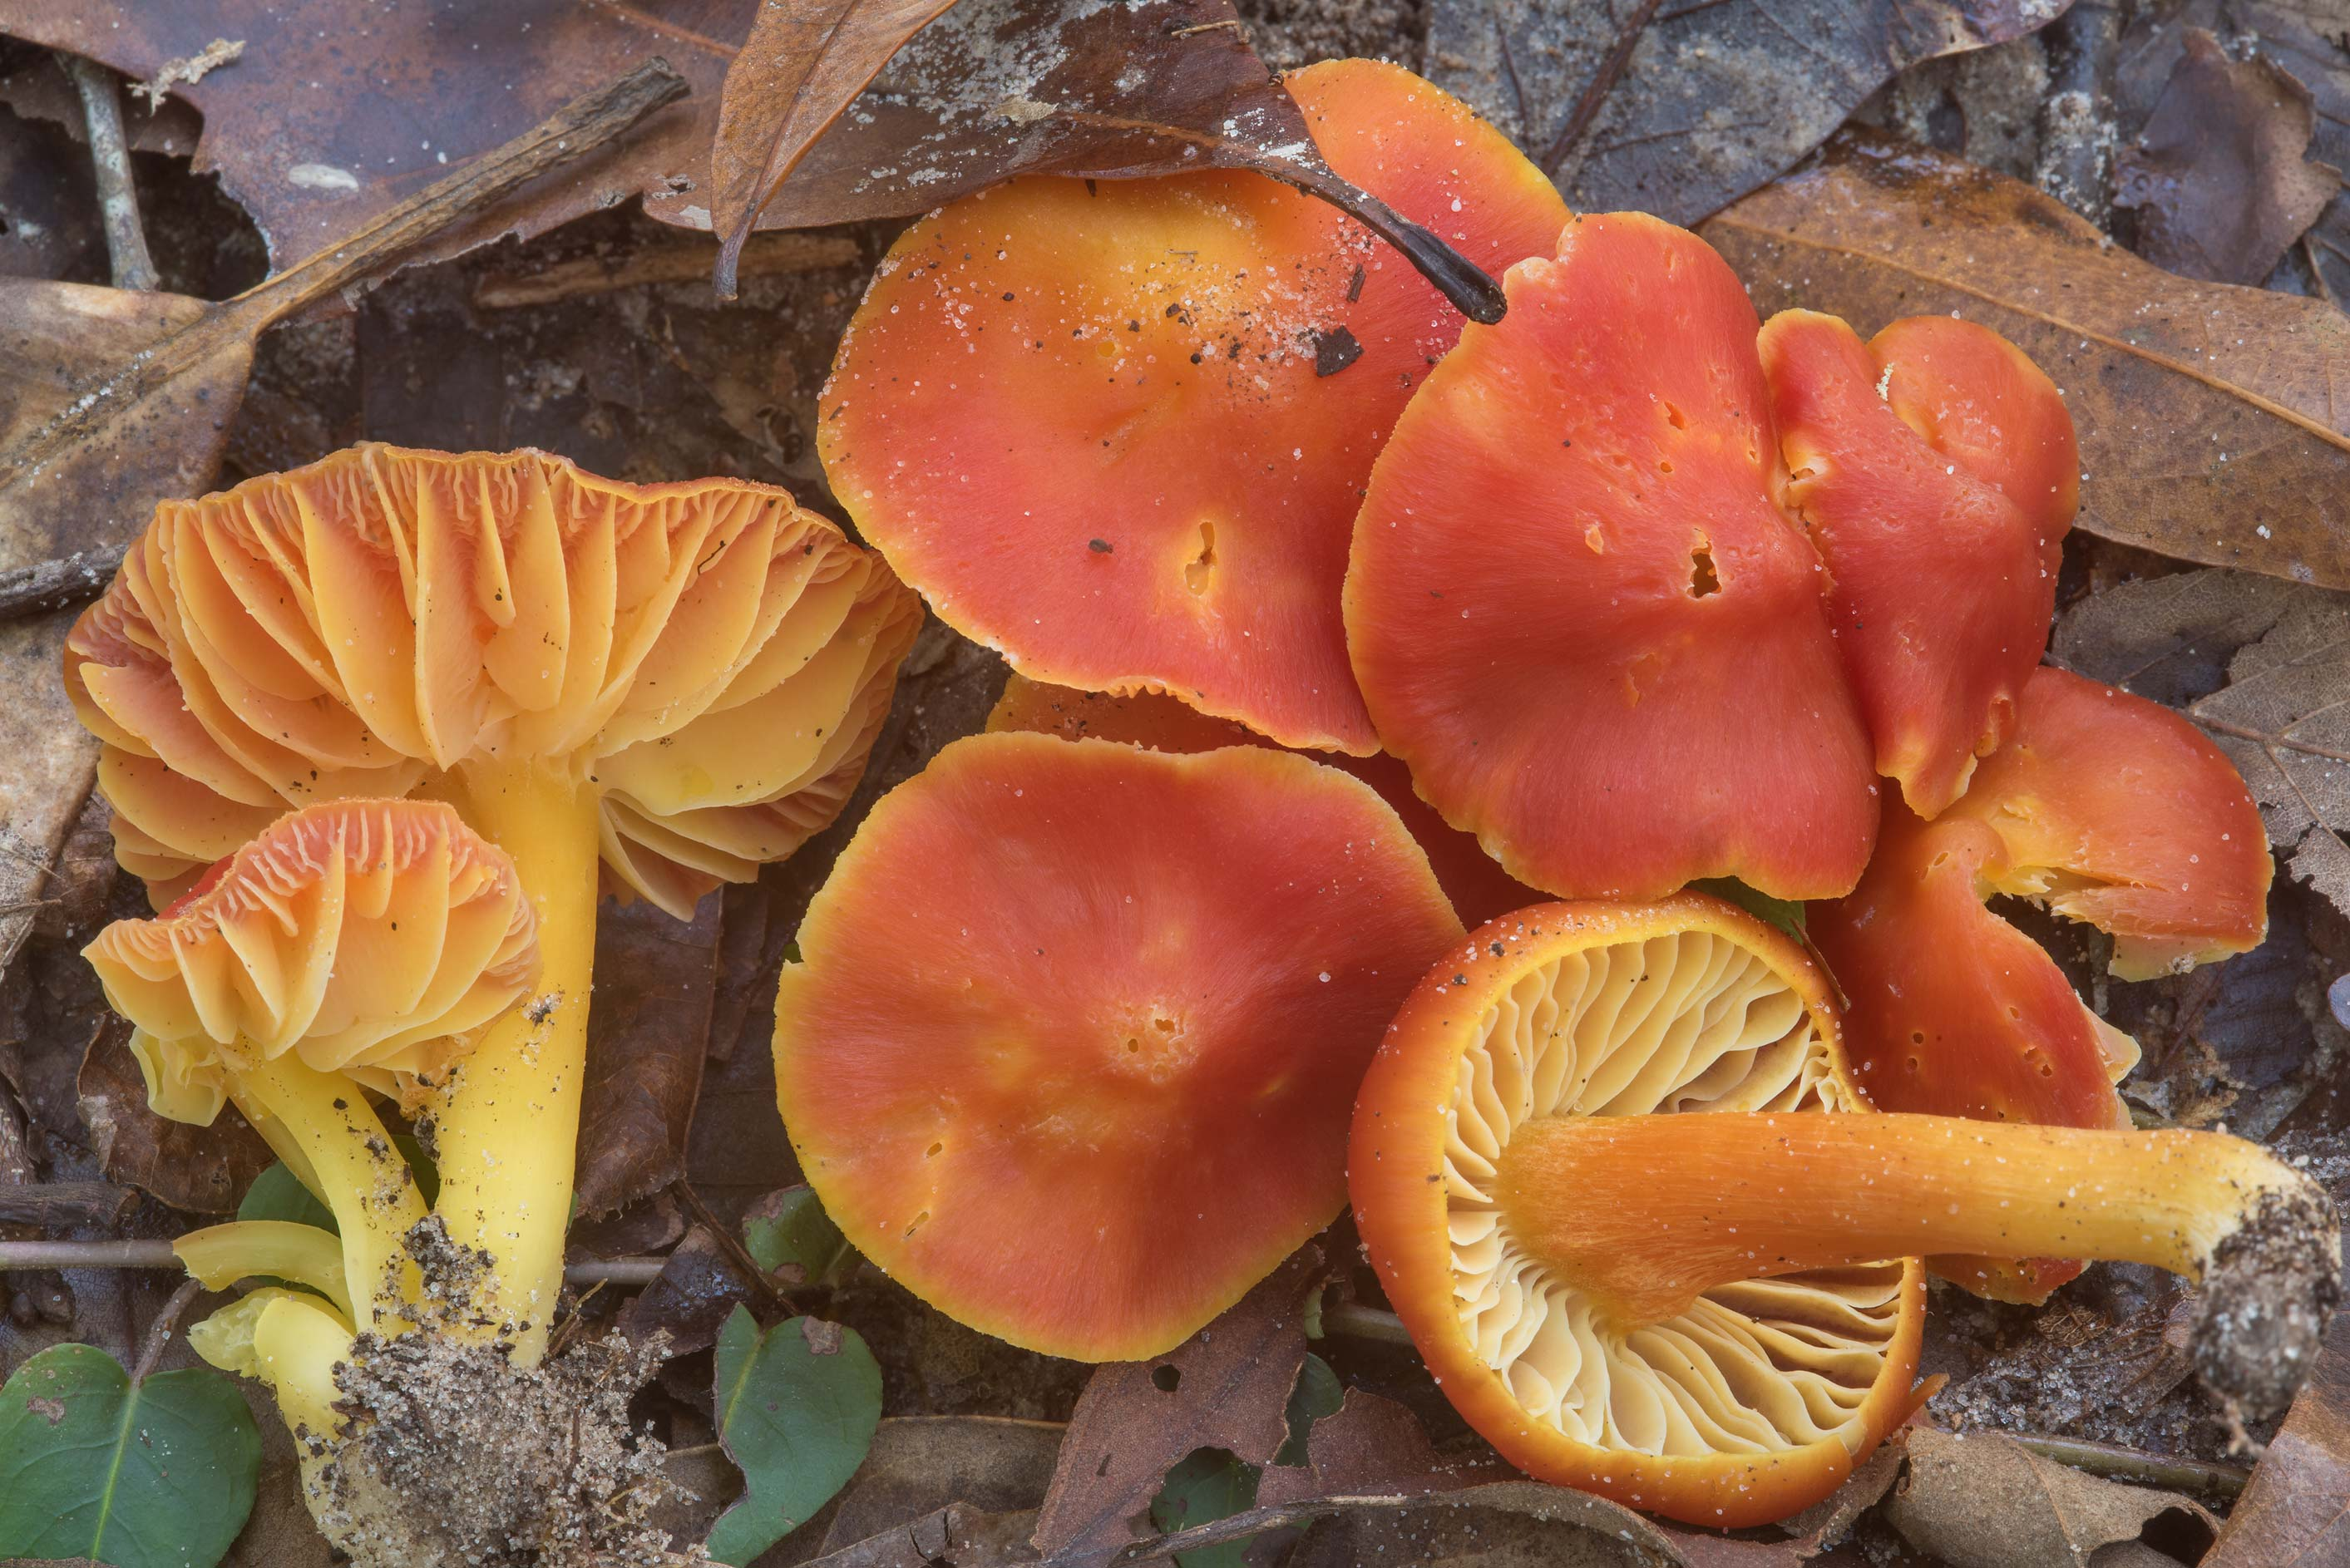 Group of scarlet waxcap mushrooms (Hygrocybe...National Forest. Shepherd, Texas